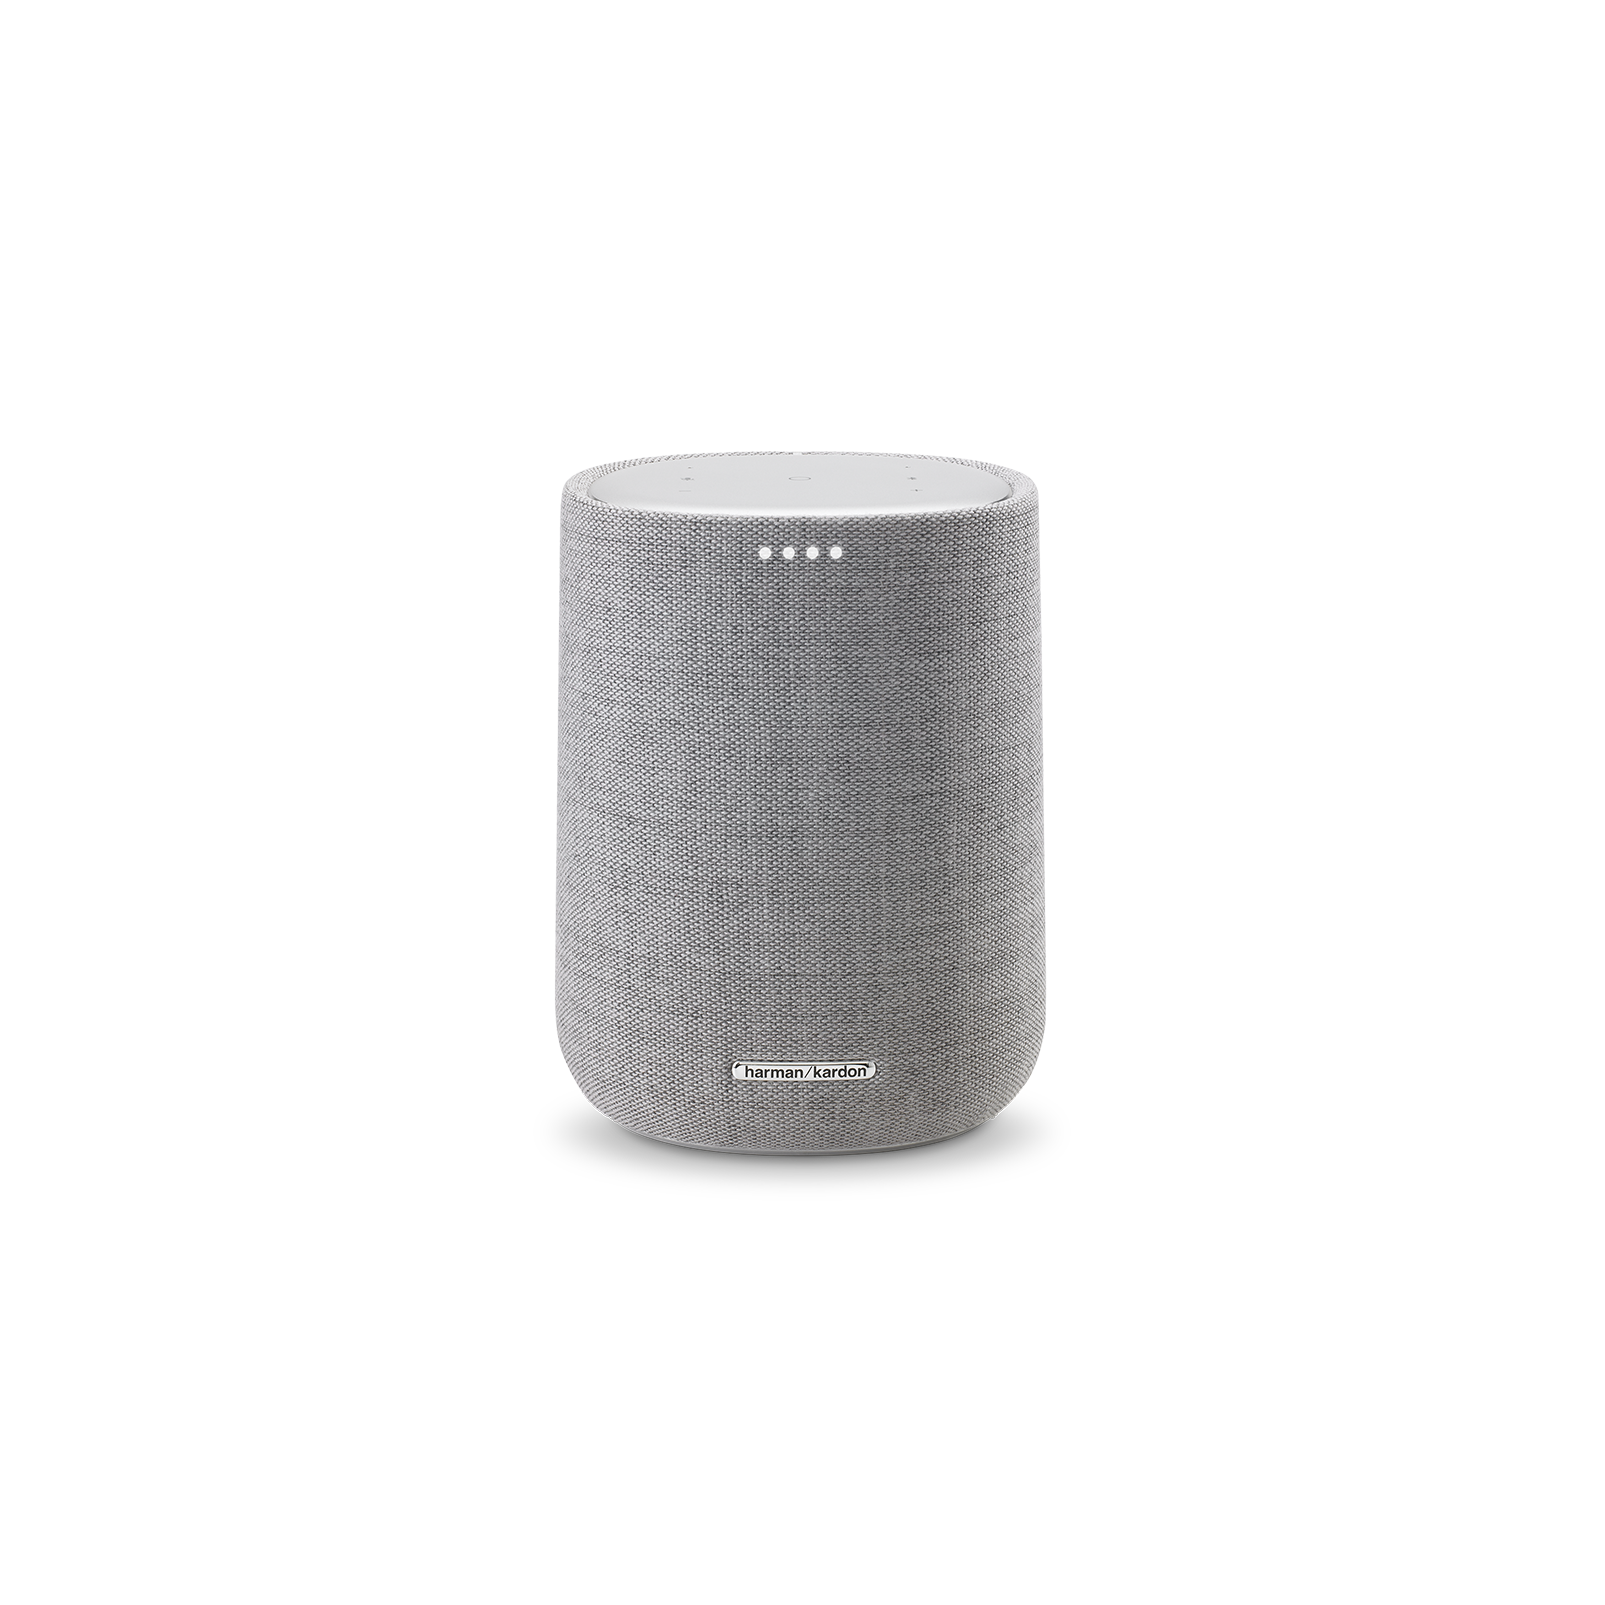 Harman Kardon Citation One MKII - Grey - All-in-one smart speaker with room-filling sound - Front